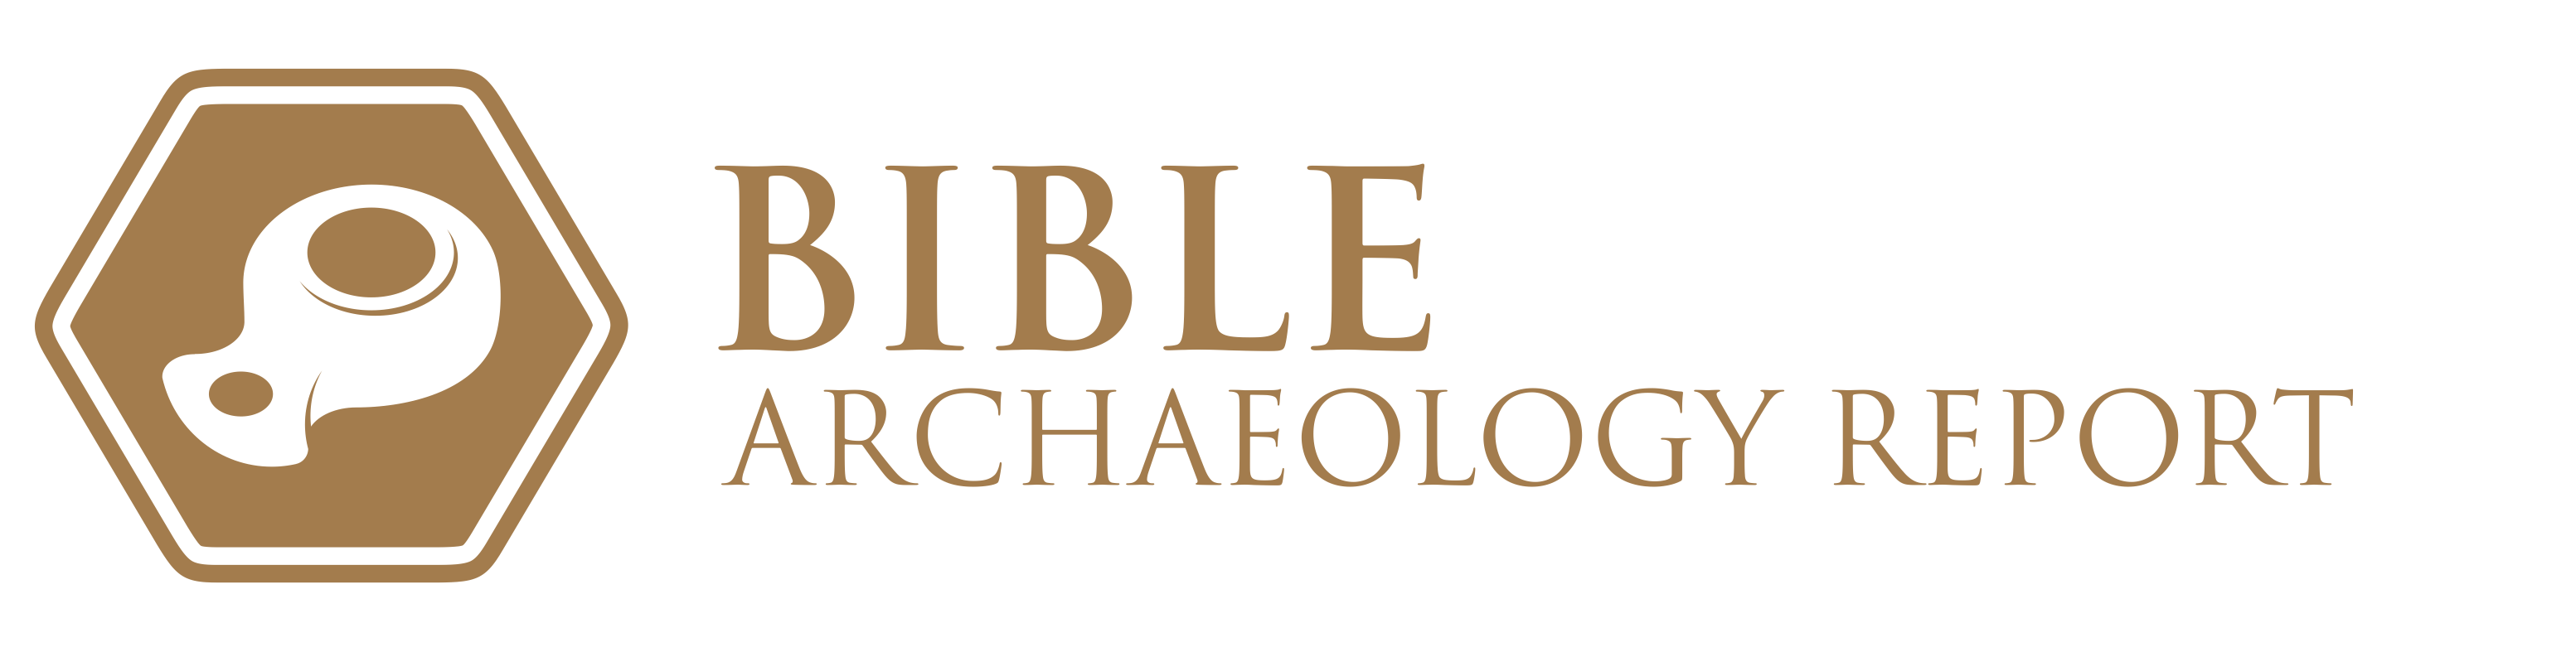 Bible Archaeology Report